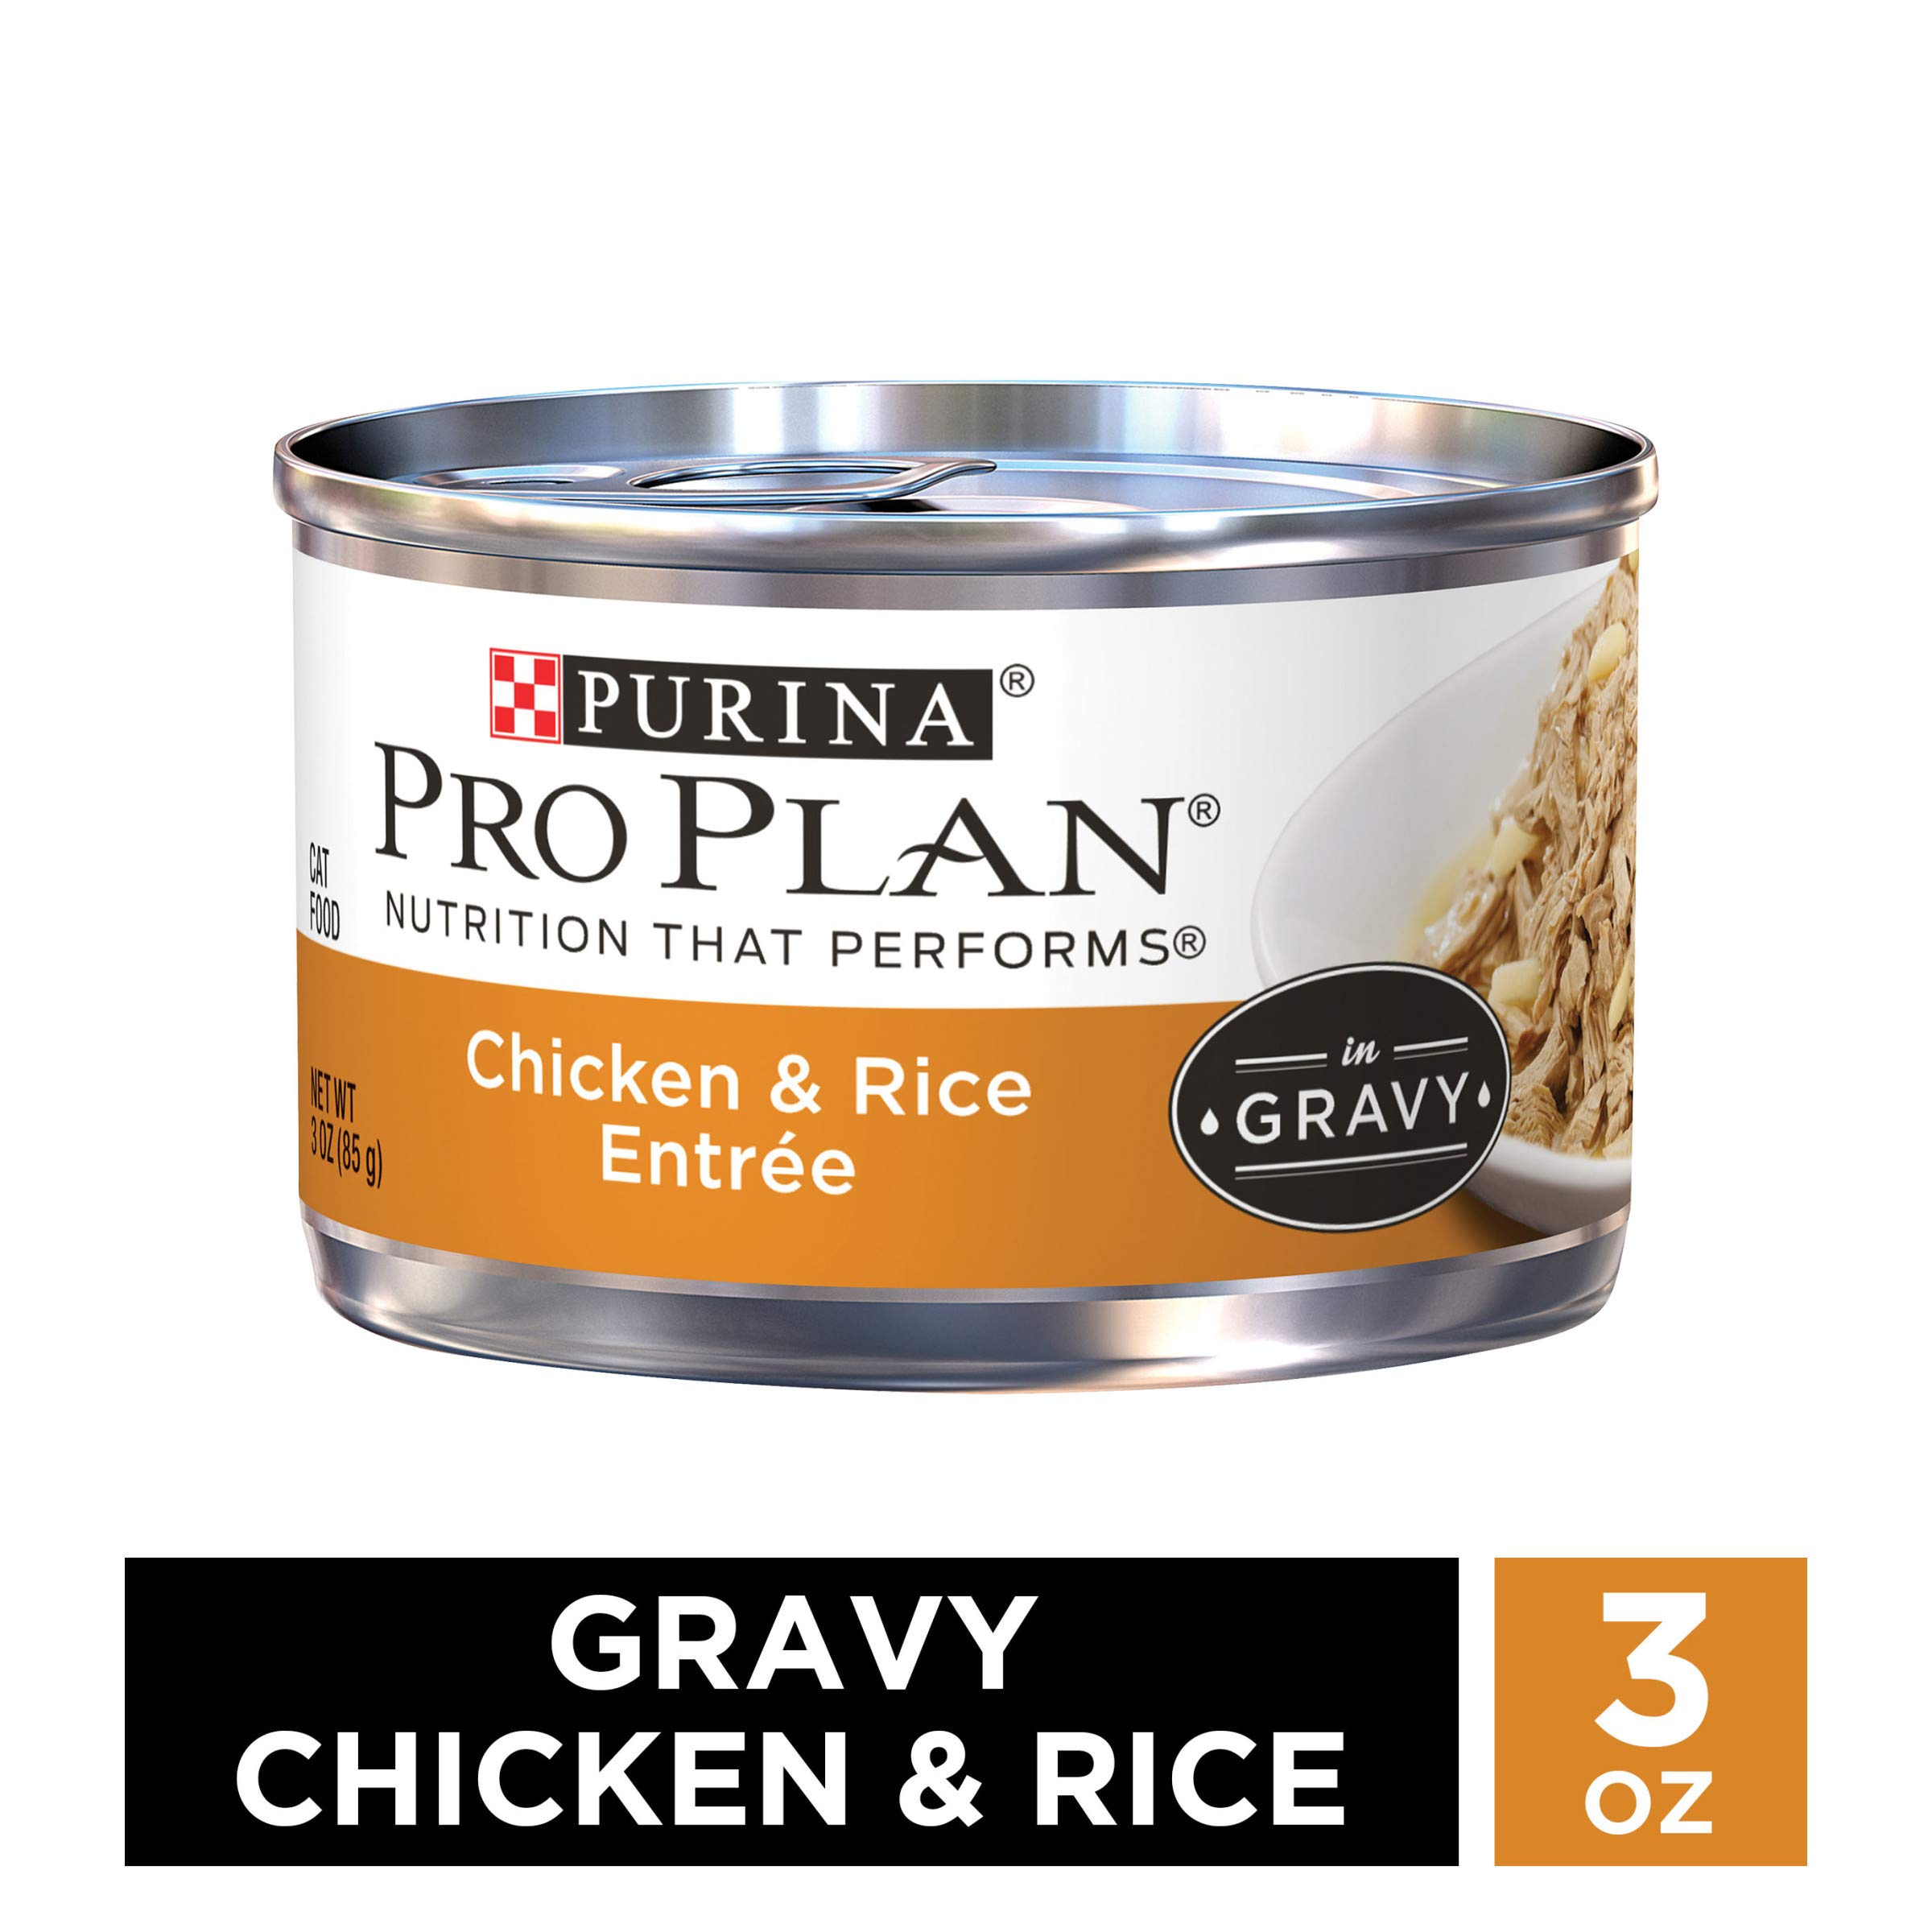 Purina Pro Plan Gravy Wet Cat Food, Chicken & Rice Entree - (24) 3 oz. Pull-Top Cans by PURINA Pro Plan